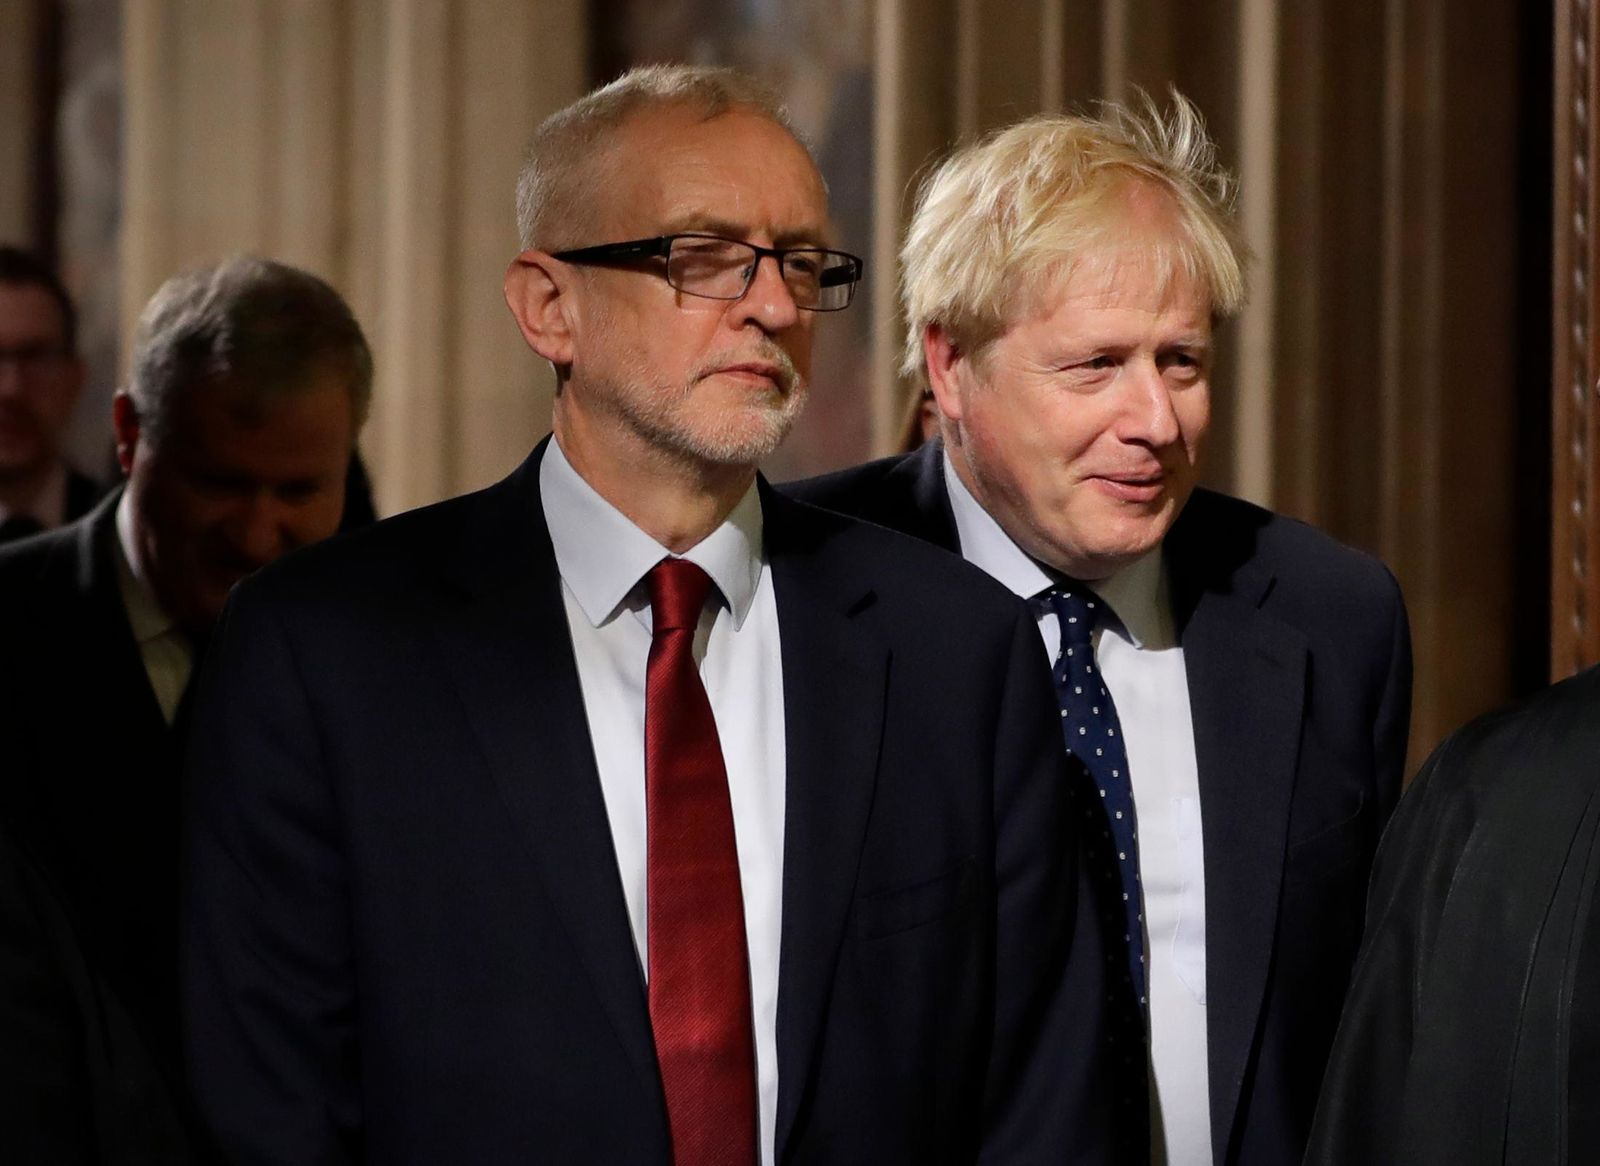 Britain's Prime Minister Boris Johnson, right, and opposition Labour Party Leader Jeremy Corbyn, left, walk through the Commons Members Lobby in Parliament, London, Monday, Oct. 14, 2019. Britain's parliament returns from a brief break for the State Opening of Parliament. (AP Photo/Kirsty Wigglesworth, pool)